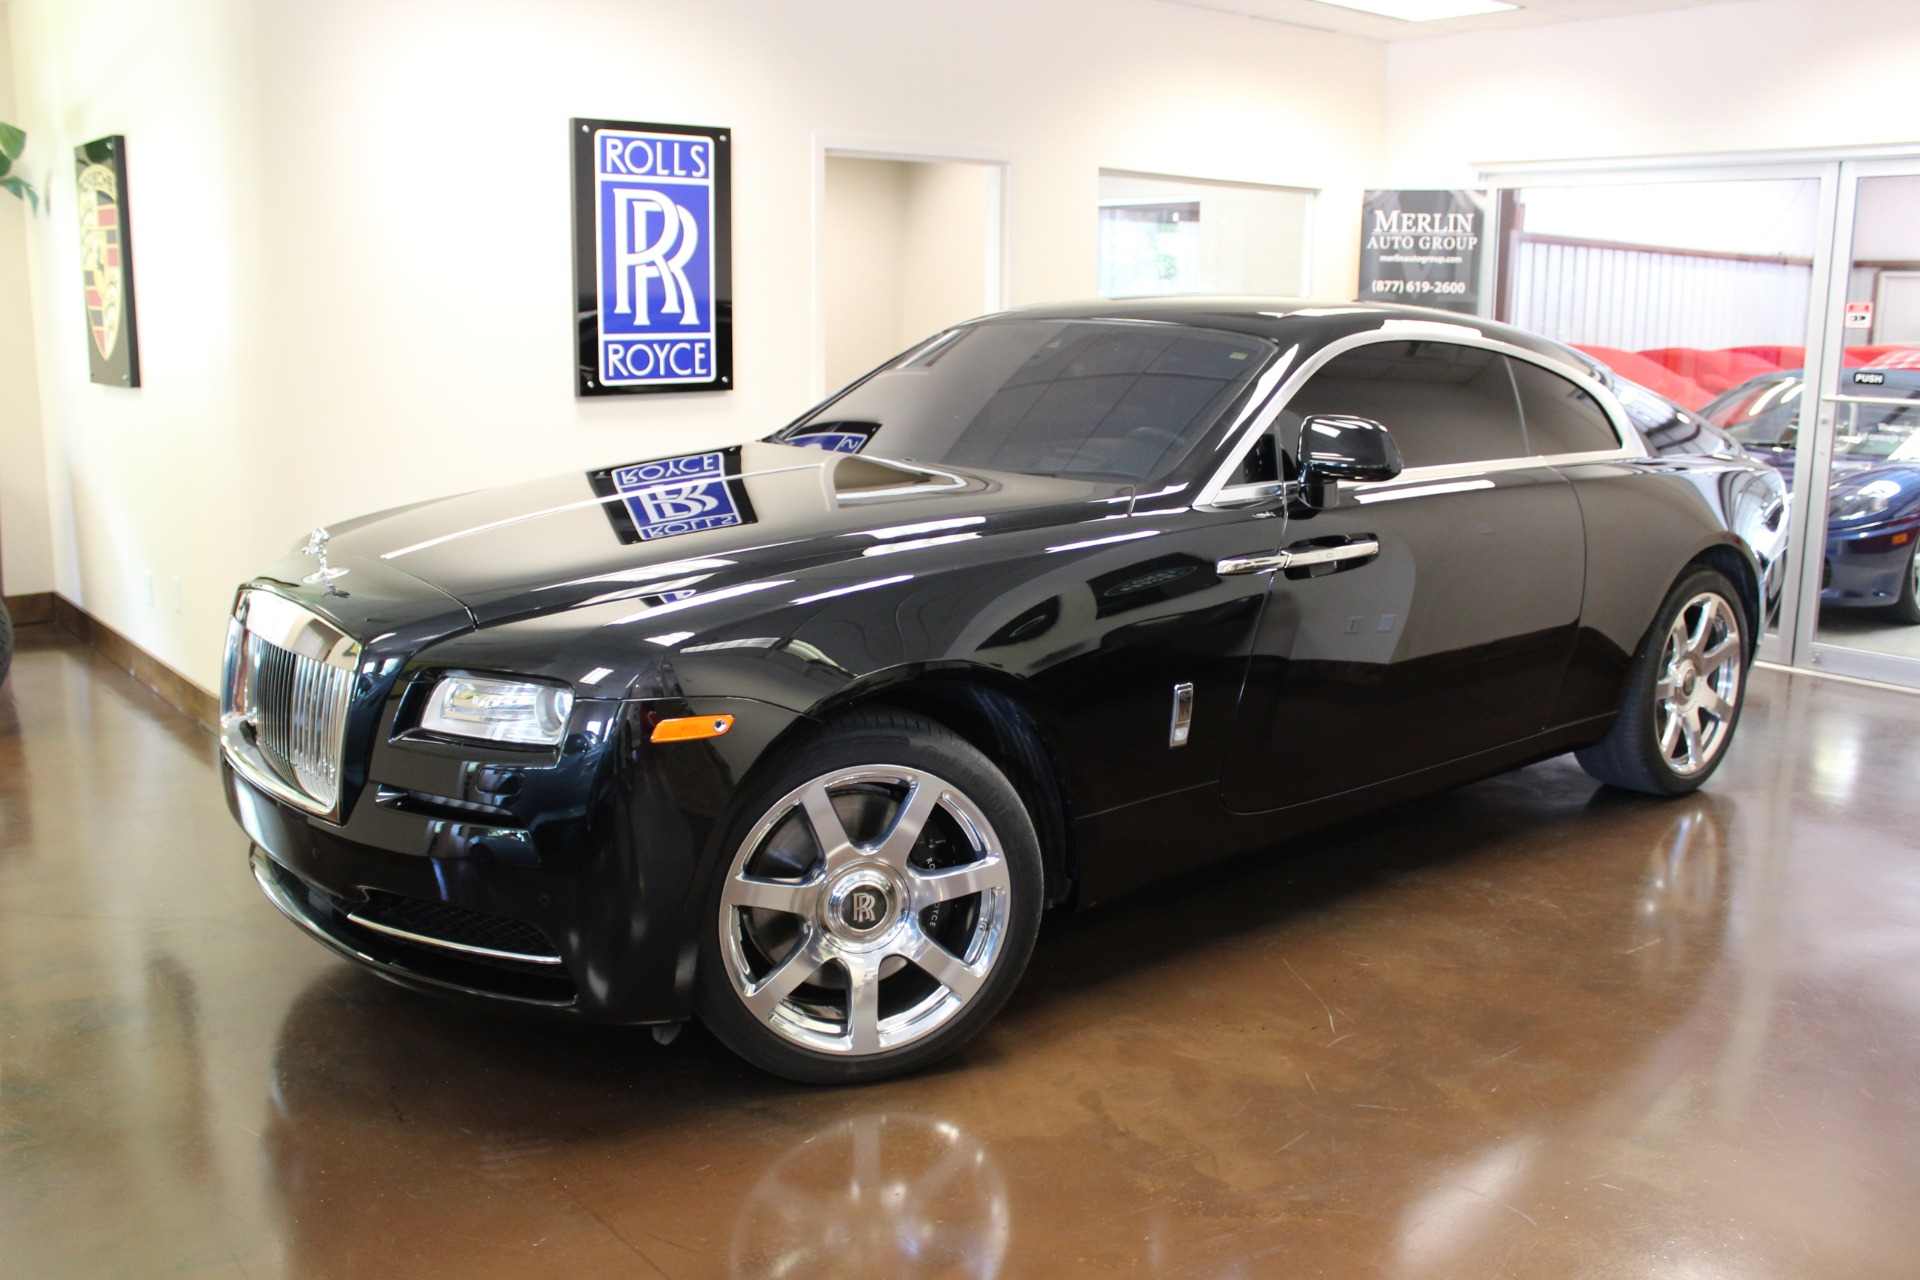 used 2015 rolls royce wraith stock p3178 ultra luxury car from merlin auto group. Black Bedroom Furniture Sets. Home Design Ideas